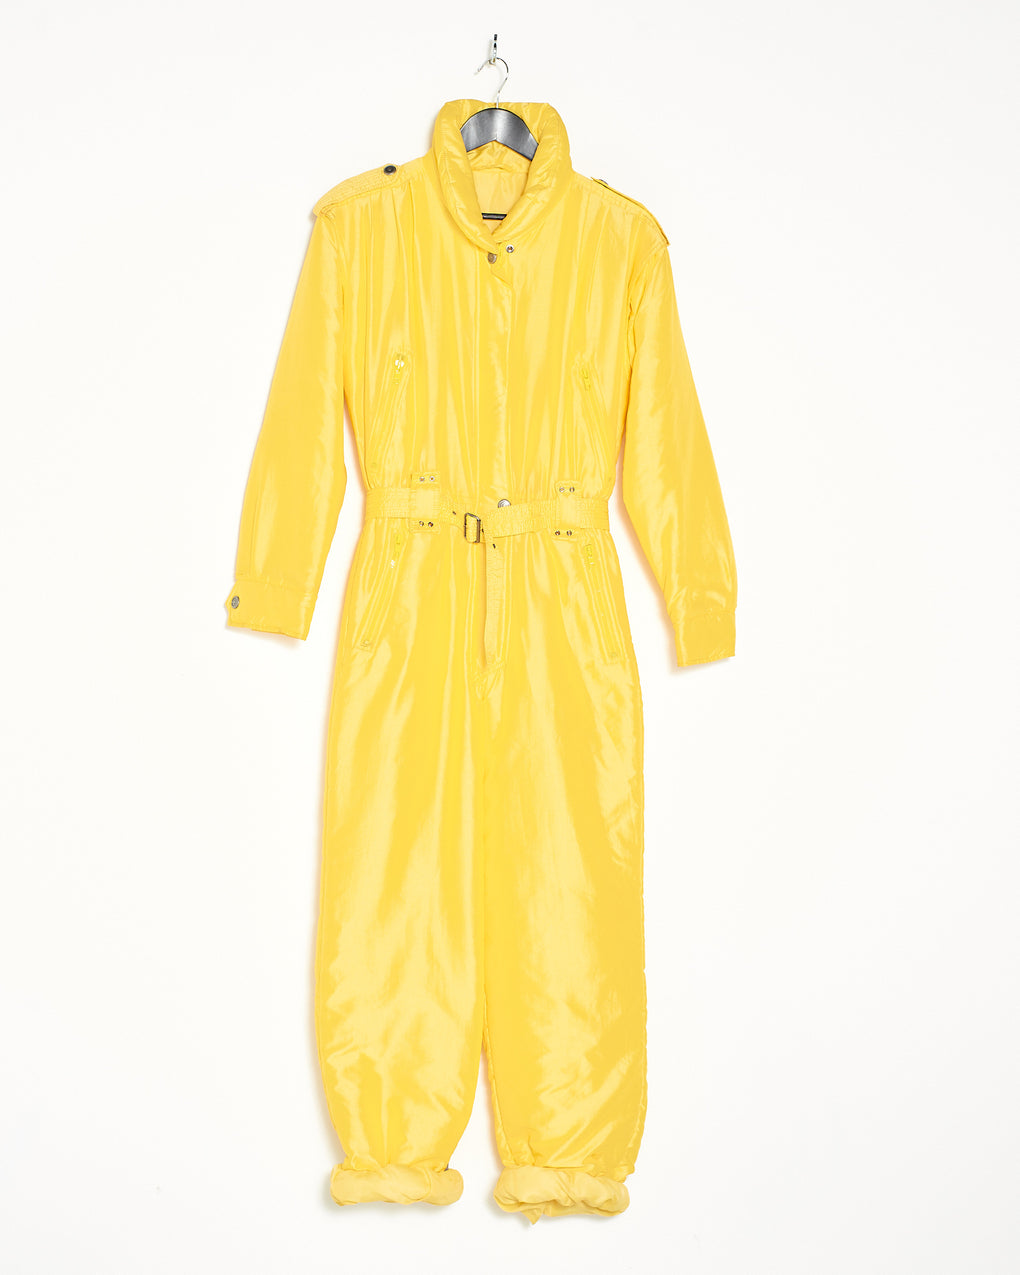 Canary Yellow Ski Onesie (S)